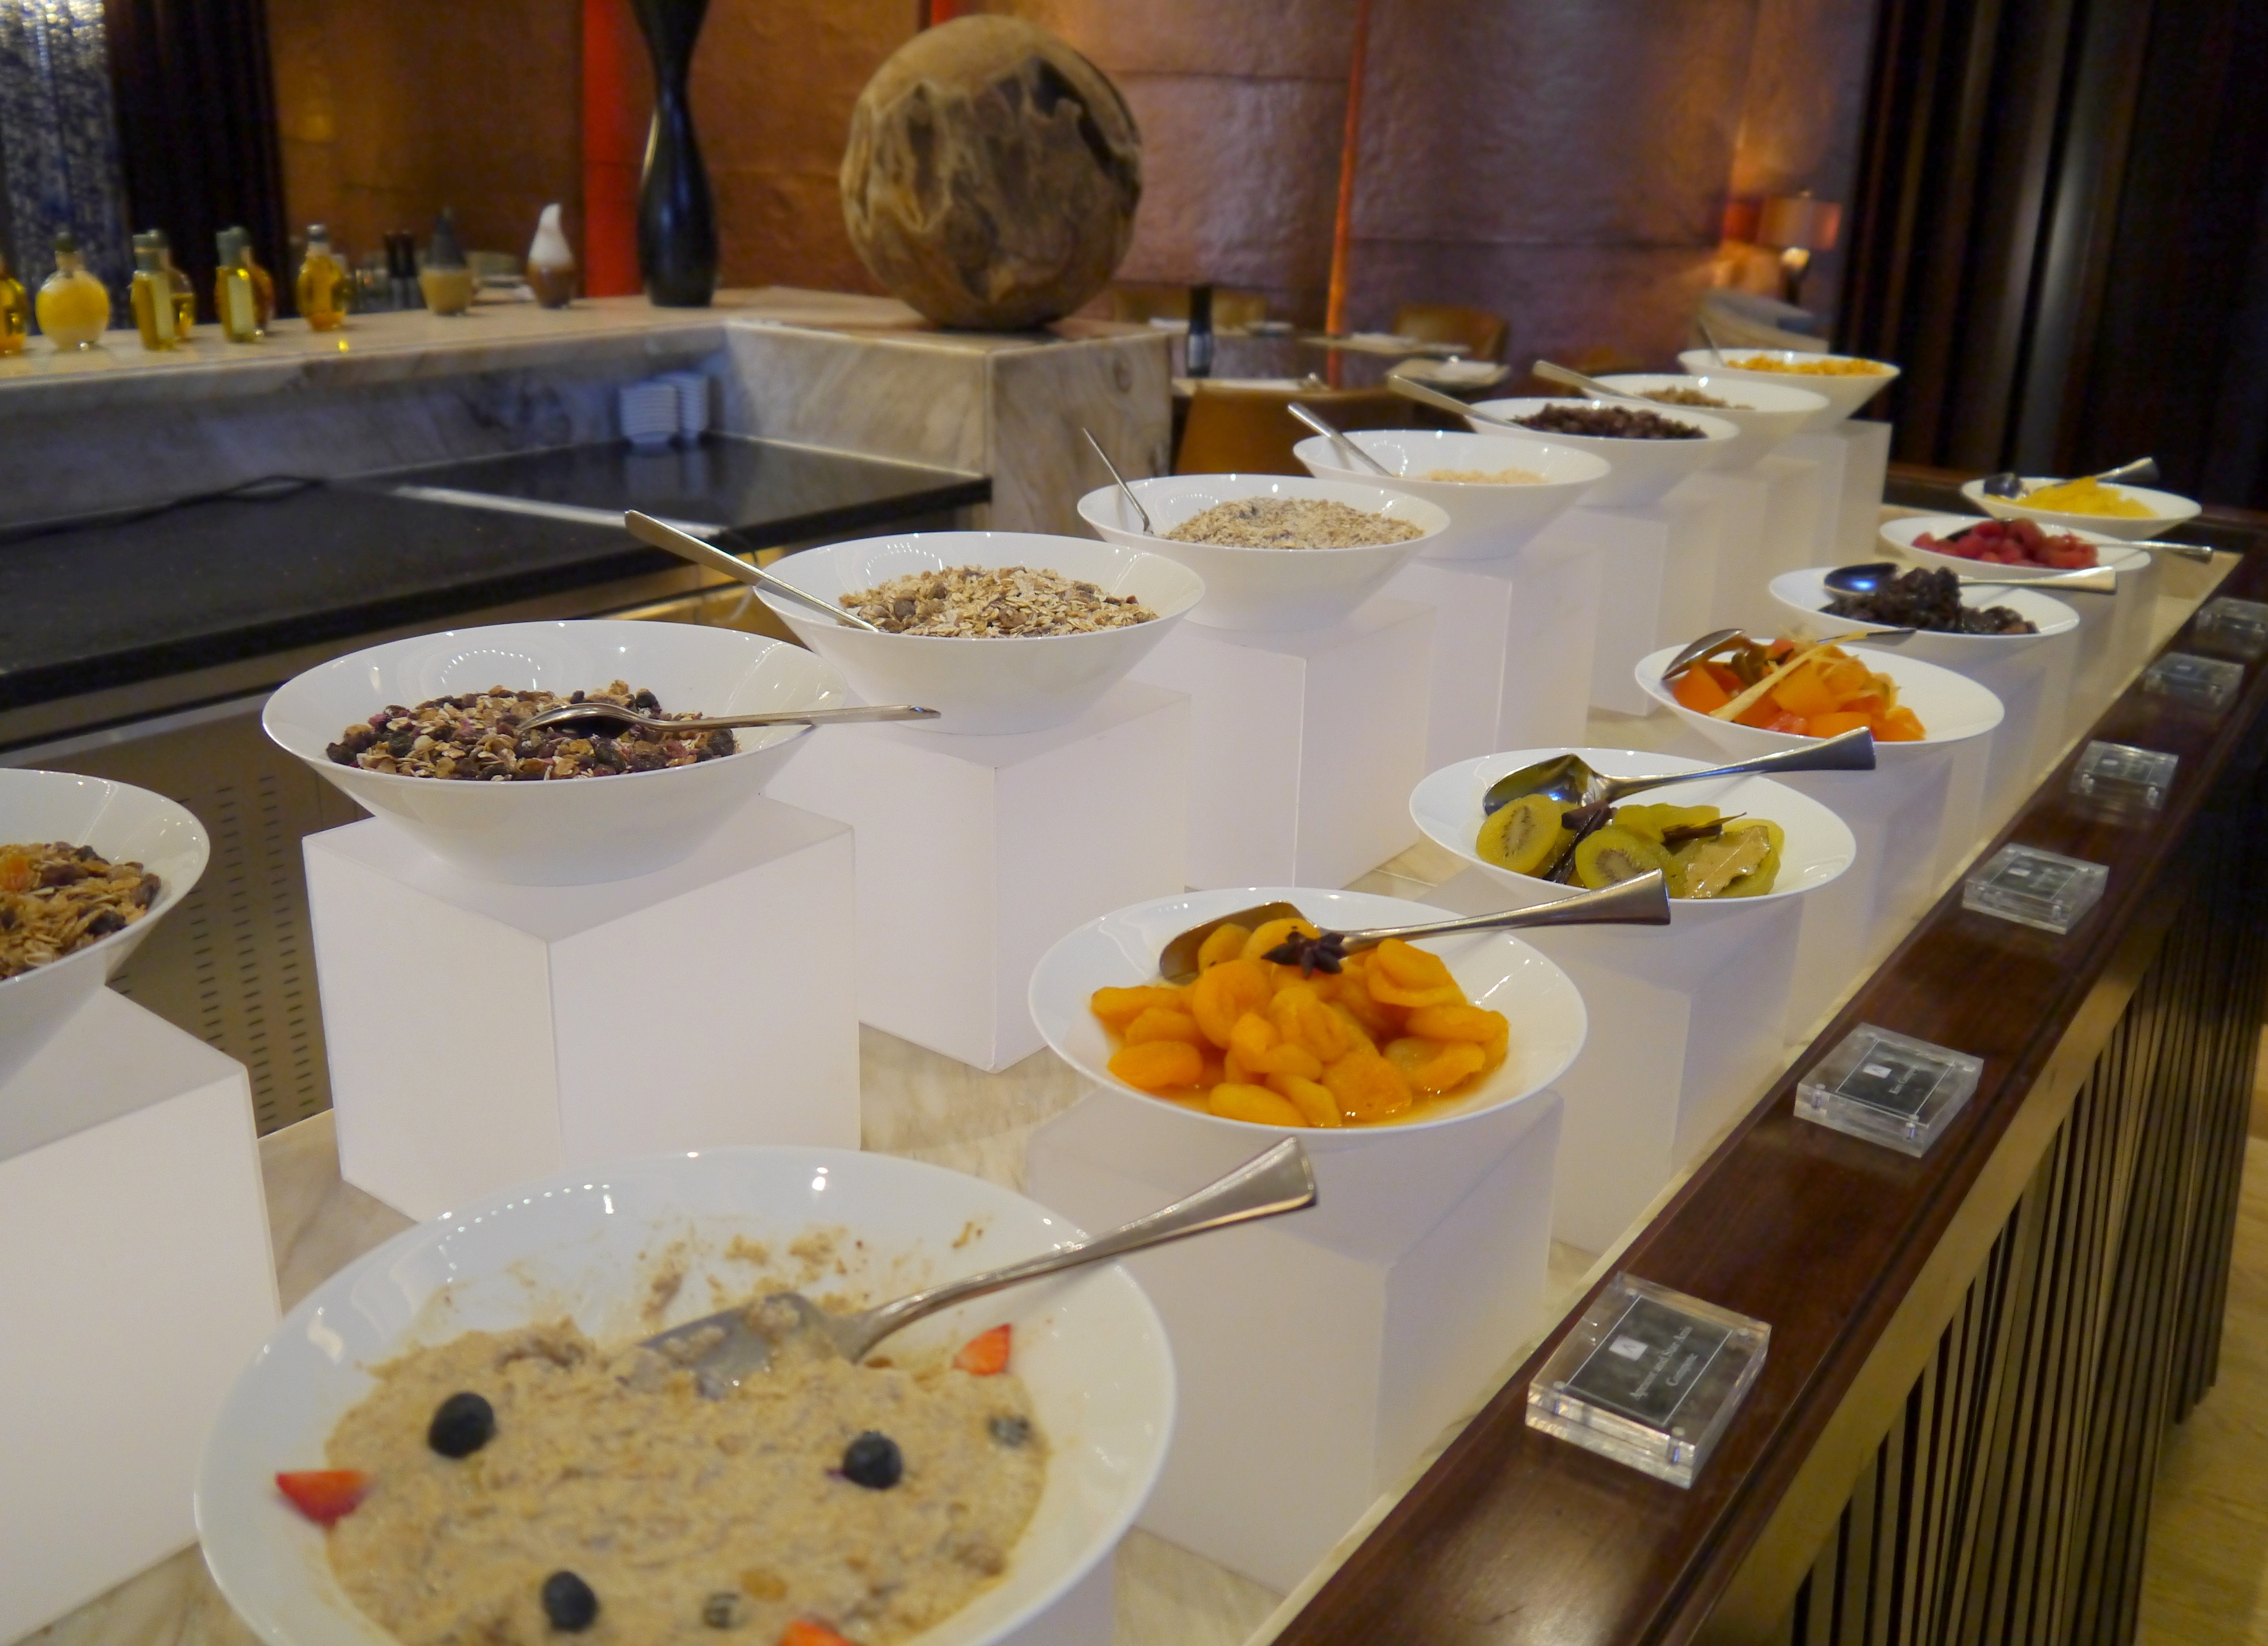 Buffet at fazaris the. Cereal clipart hotel breakfast